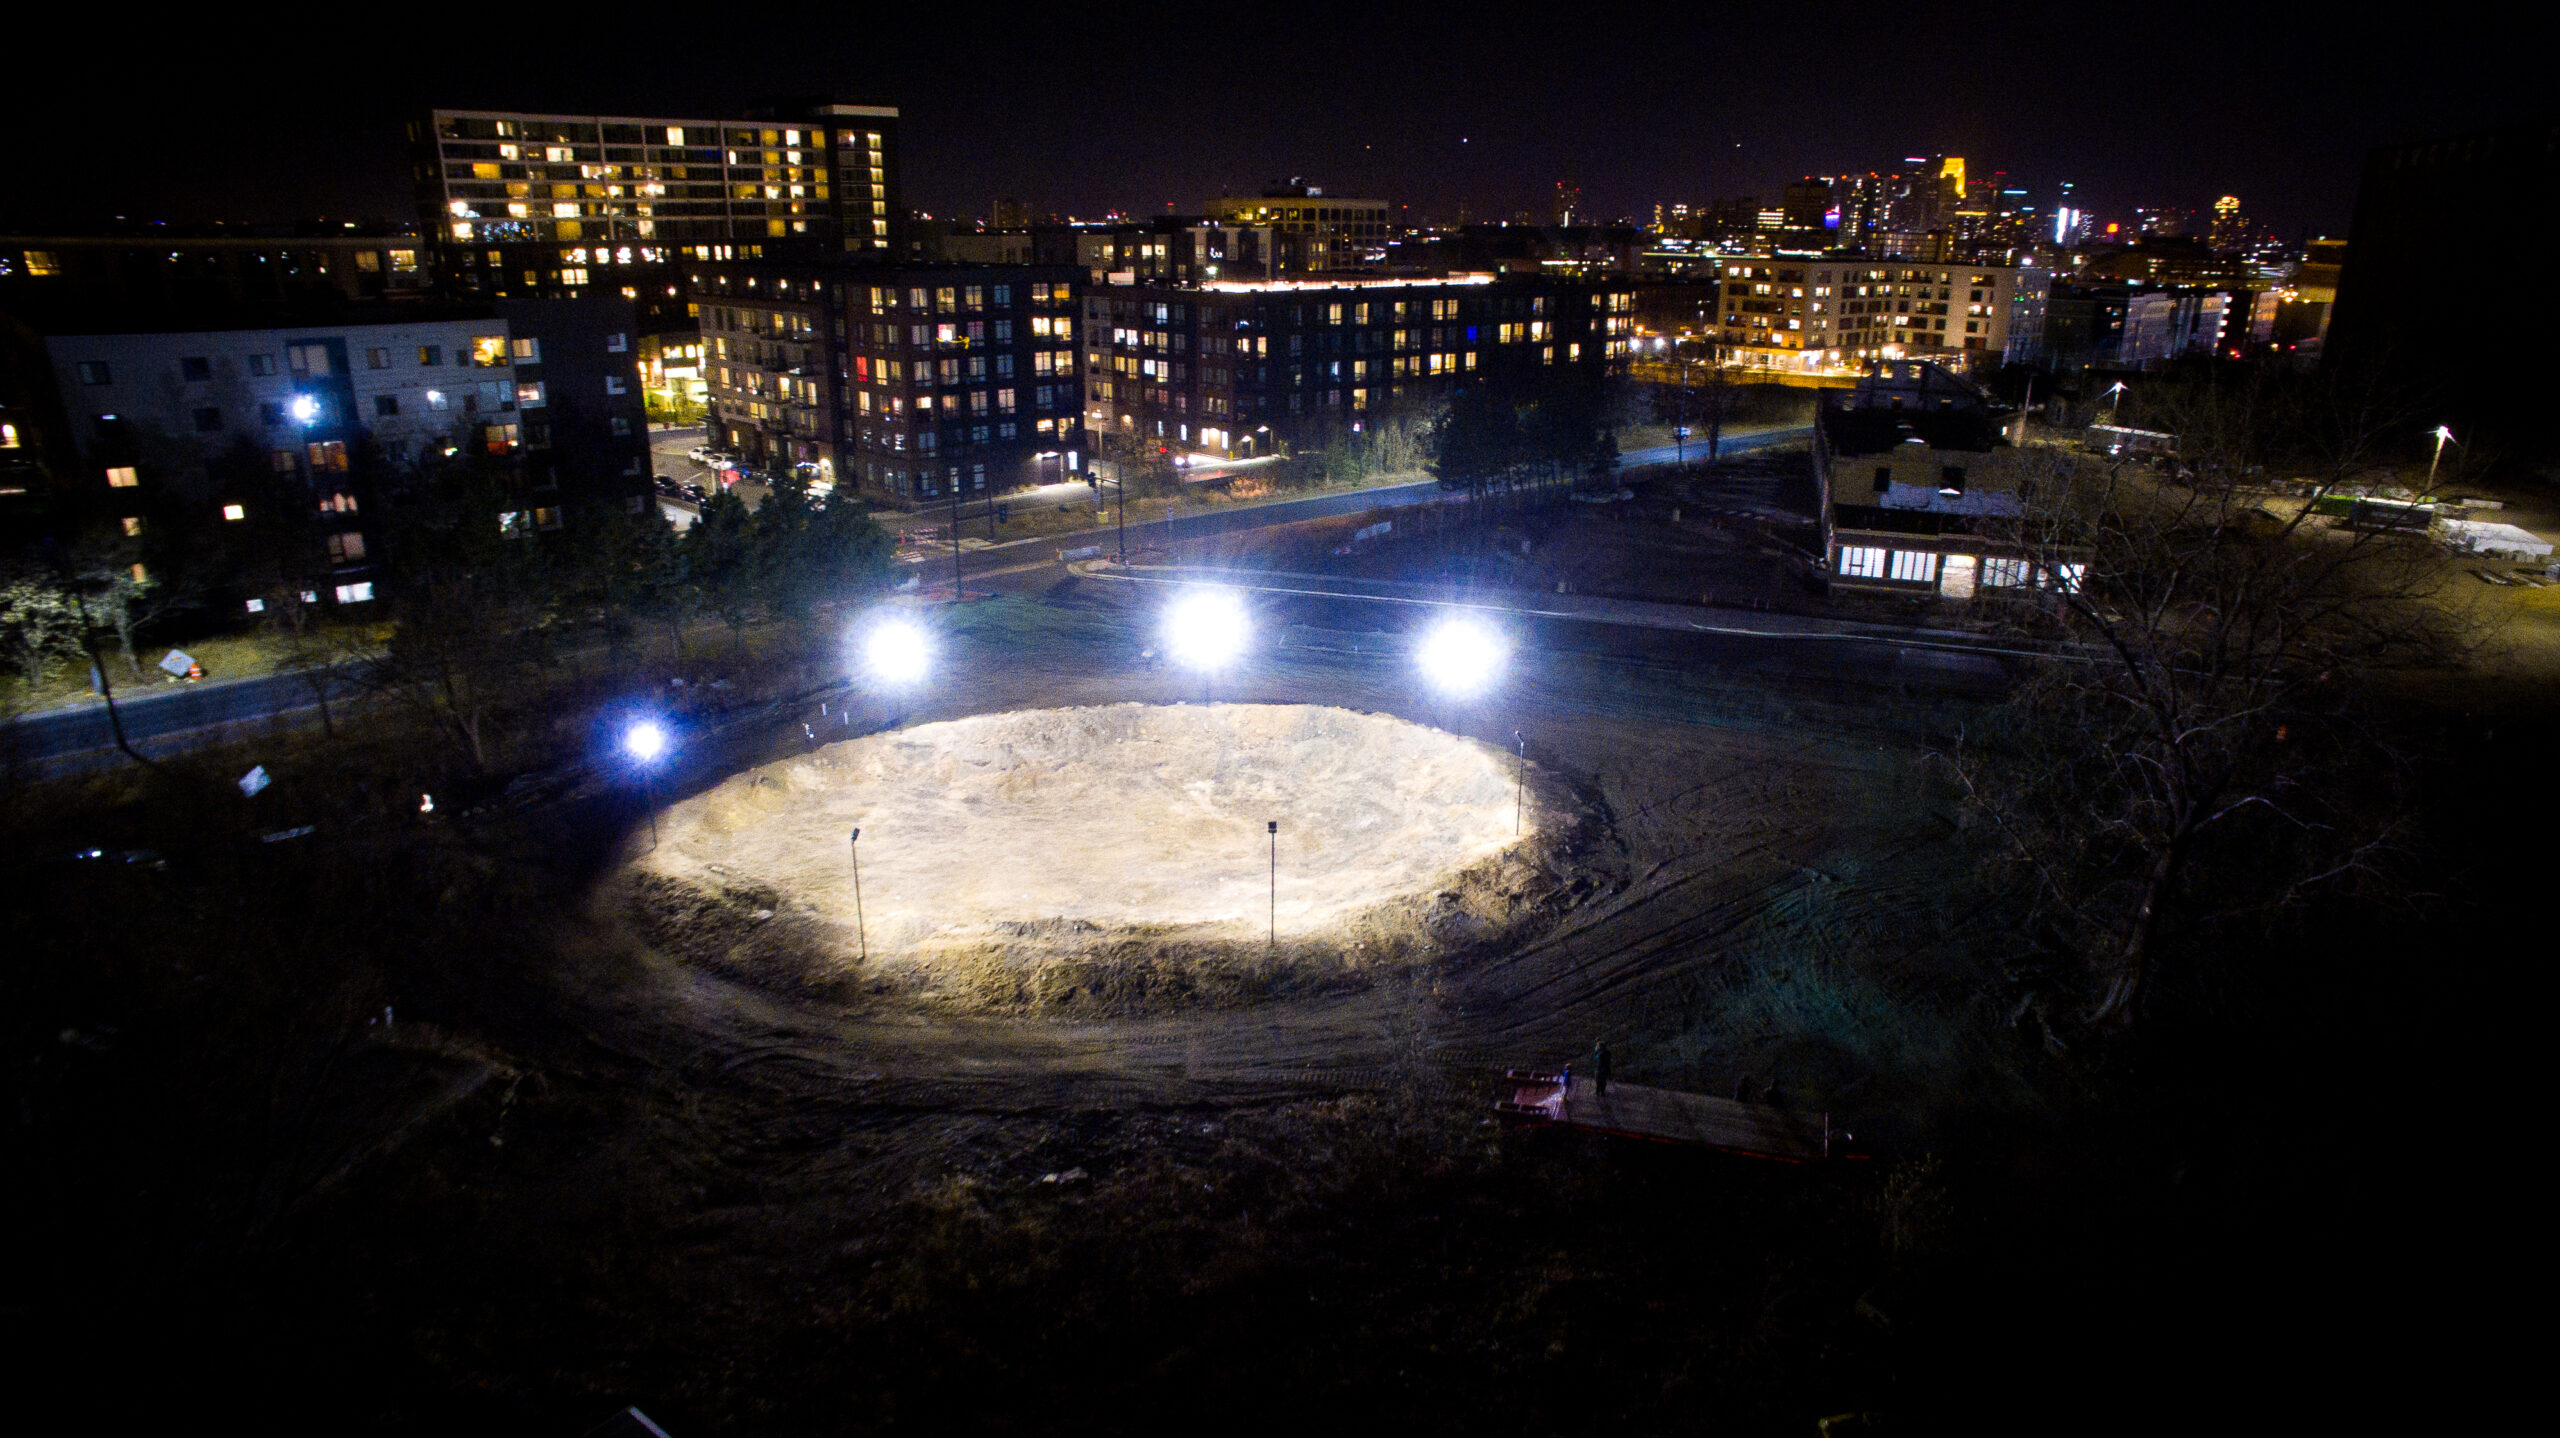 Aerial view of a convex mound of dirt lit with stadium lights at night, with apartment buildings in the background